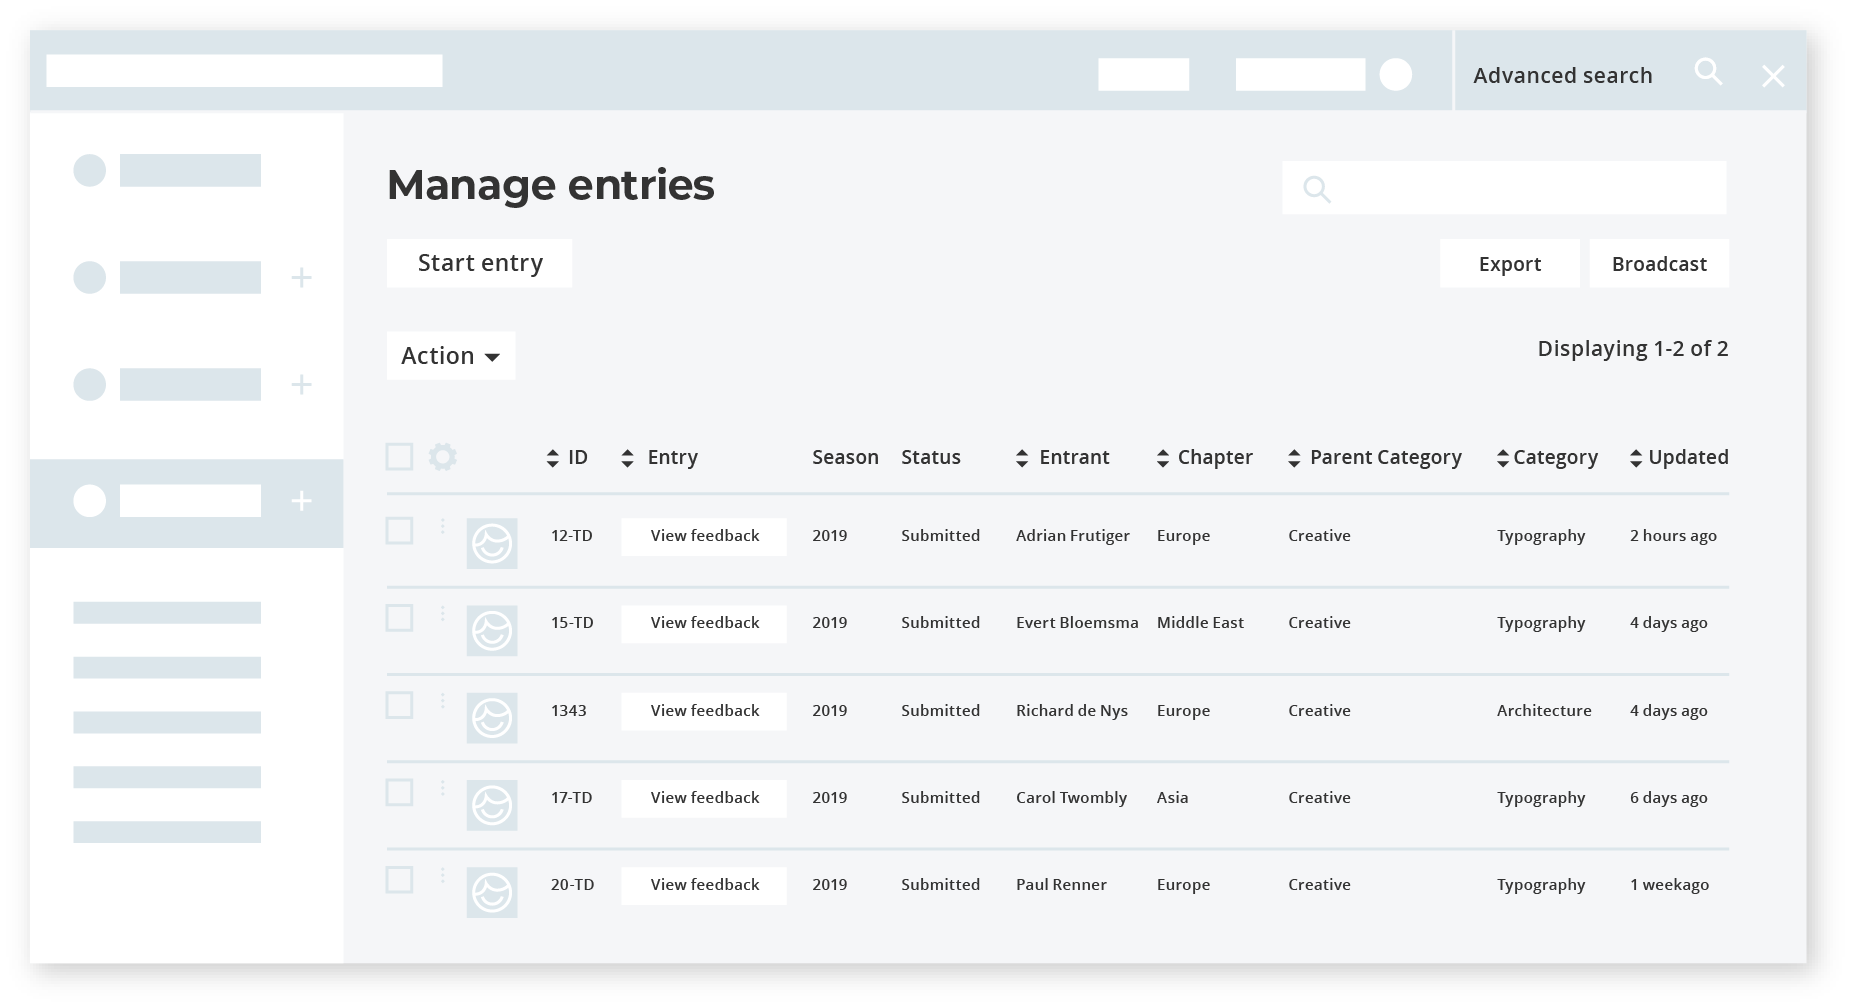 Get organised and save time with awards management software